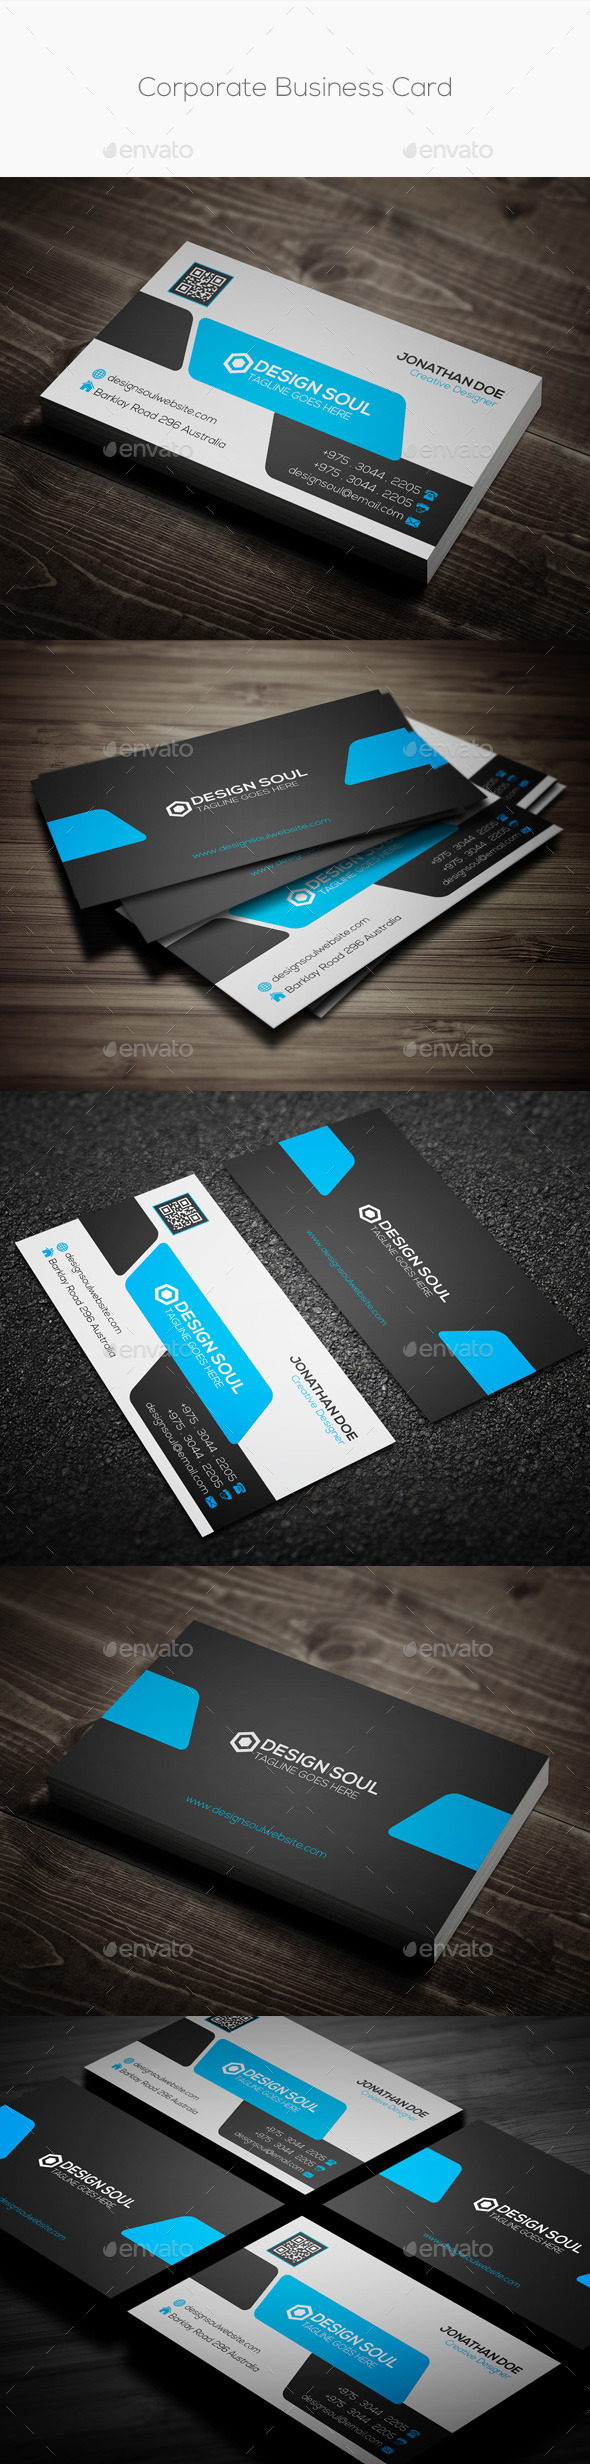 GraphicRiver Corporate Business Card 9982341